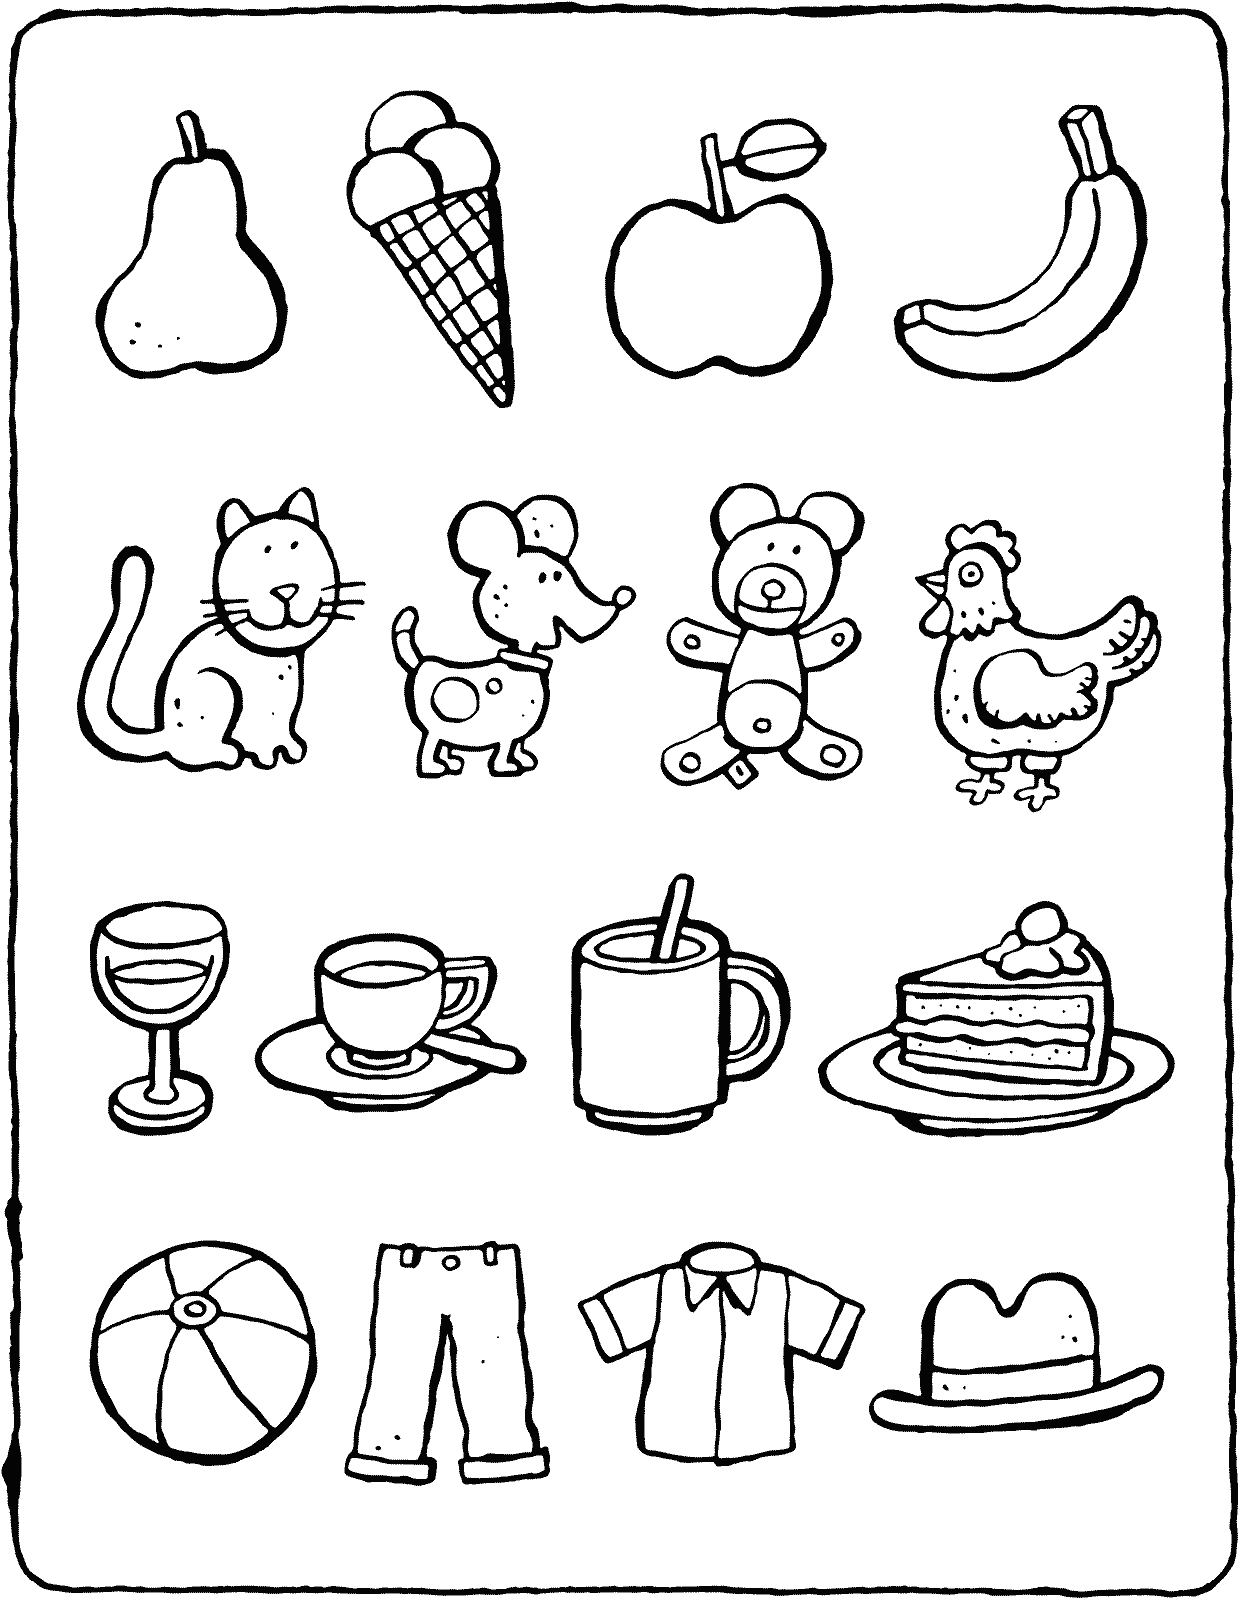 colour in the odd one out colouring page drawing picture 01V